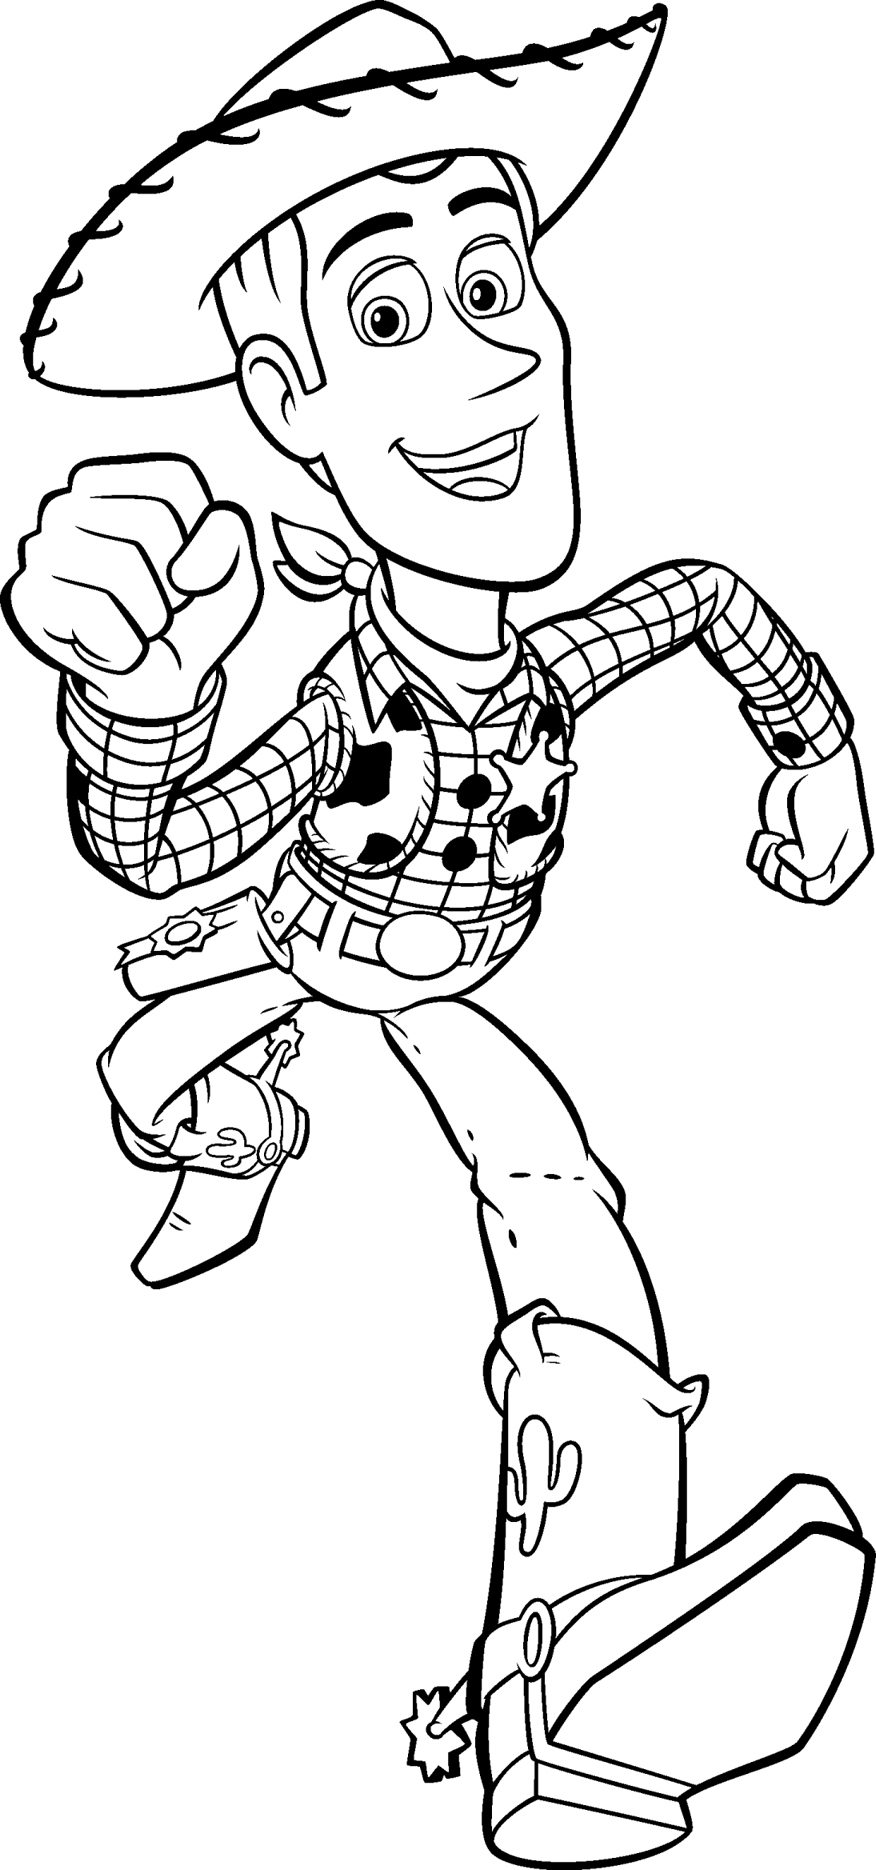 Toy Story without colour   Toy Story 18 Photo 1184561218   Fanpop ...